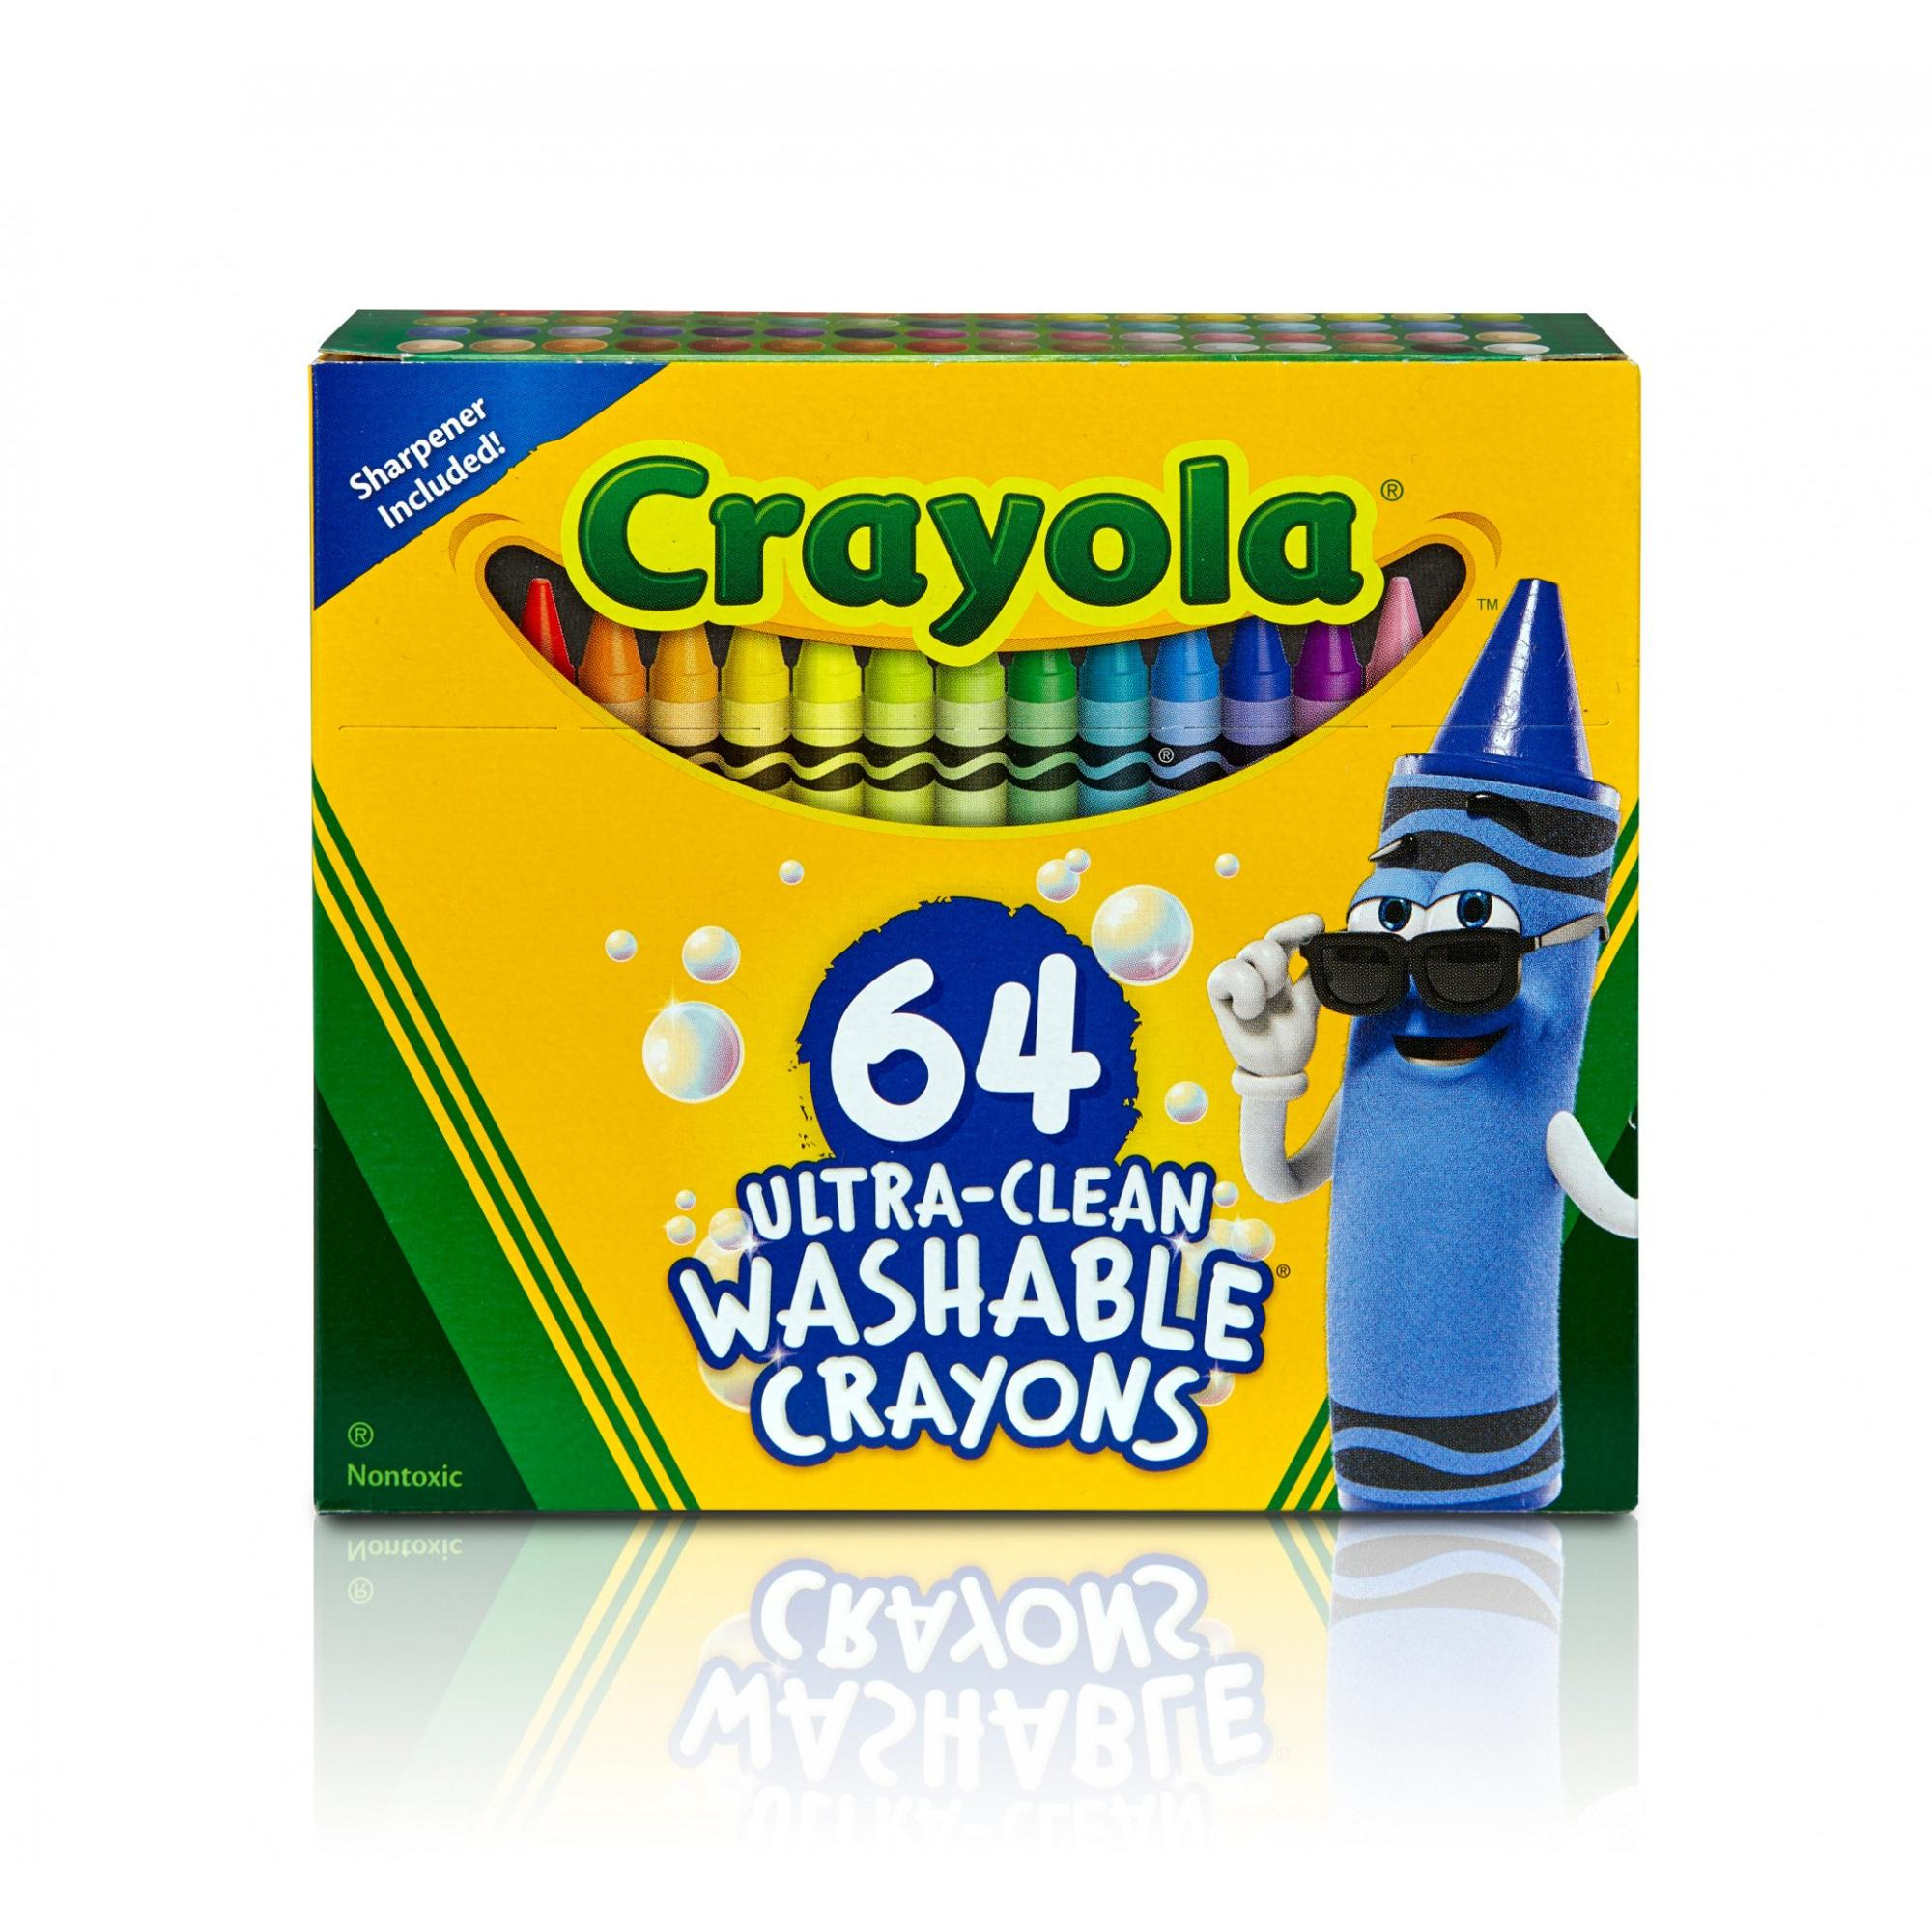 Crayola Ultra-Clean Washable Crayons With Sharpener, 64 Count